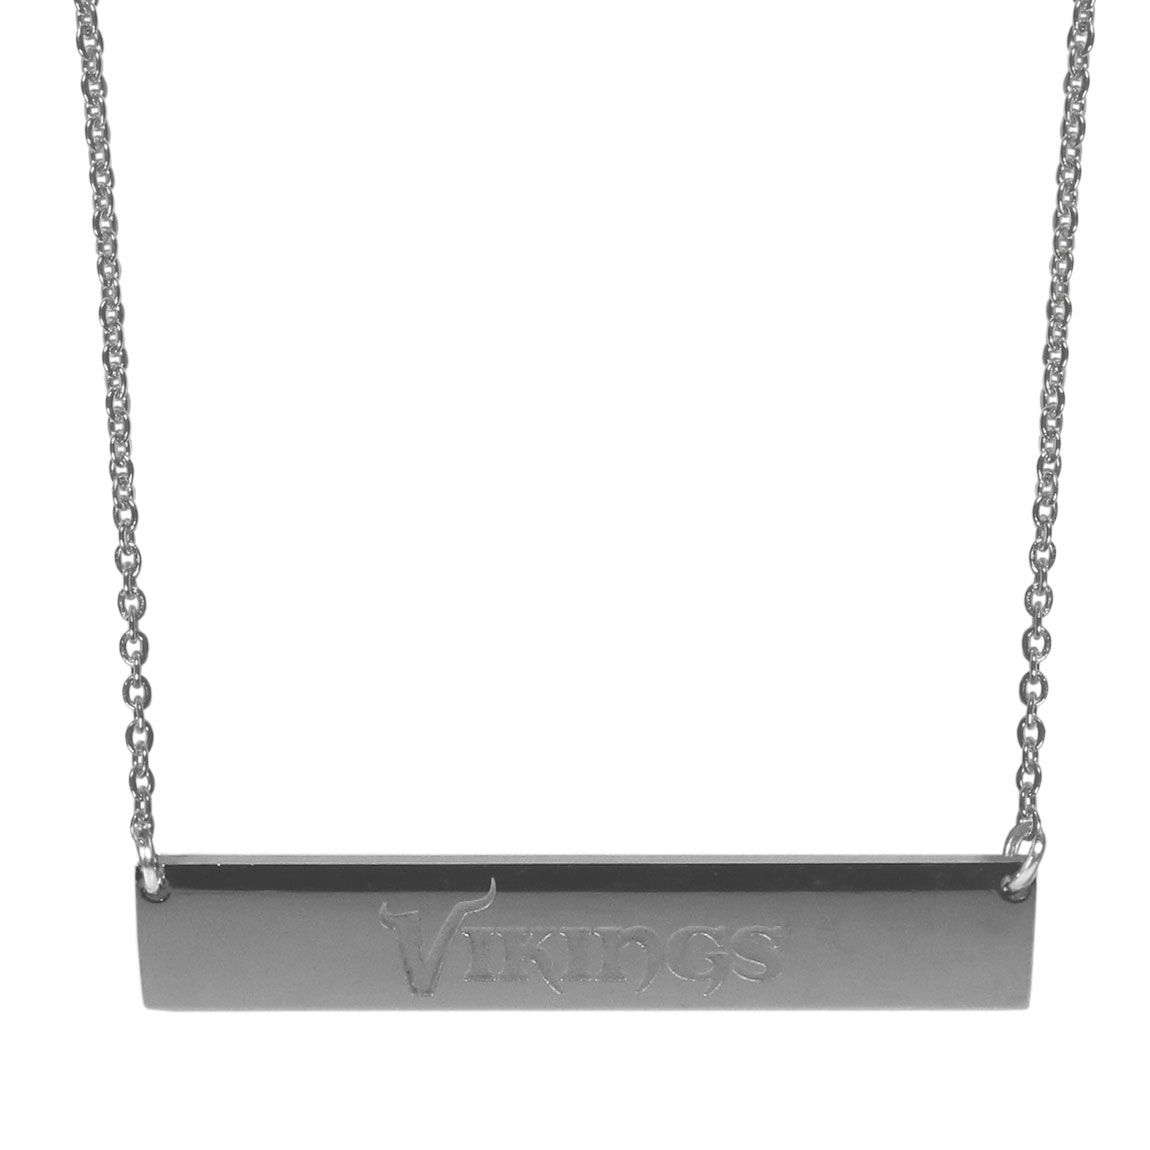 Minnesota Vikings Bar Necklace - Simply beautiful Minnesota Vikings bar necklace on a 20 inch link chain with 2 inch adjustable extender. This light-weight bar necklace has a stylish silver colored finish with the team name expertly etched on the 1.5 inch bar. Every female  fan will enjoy this contempory fashion accessory.